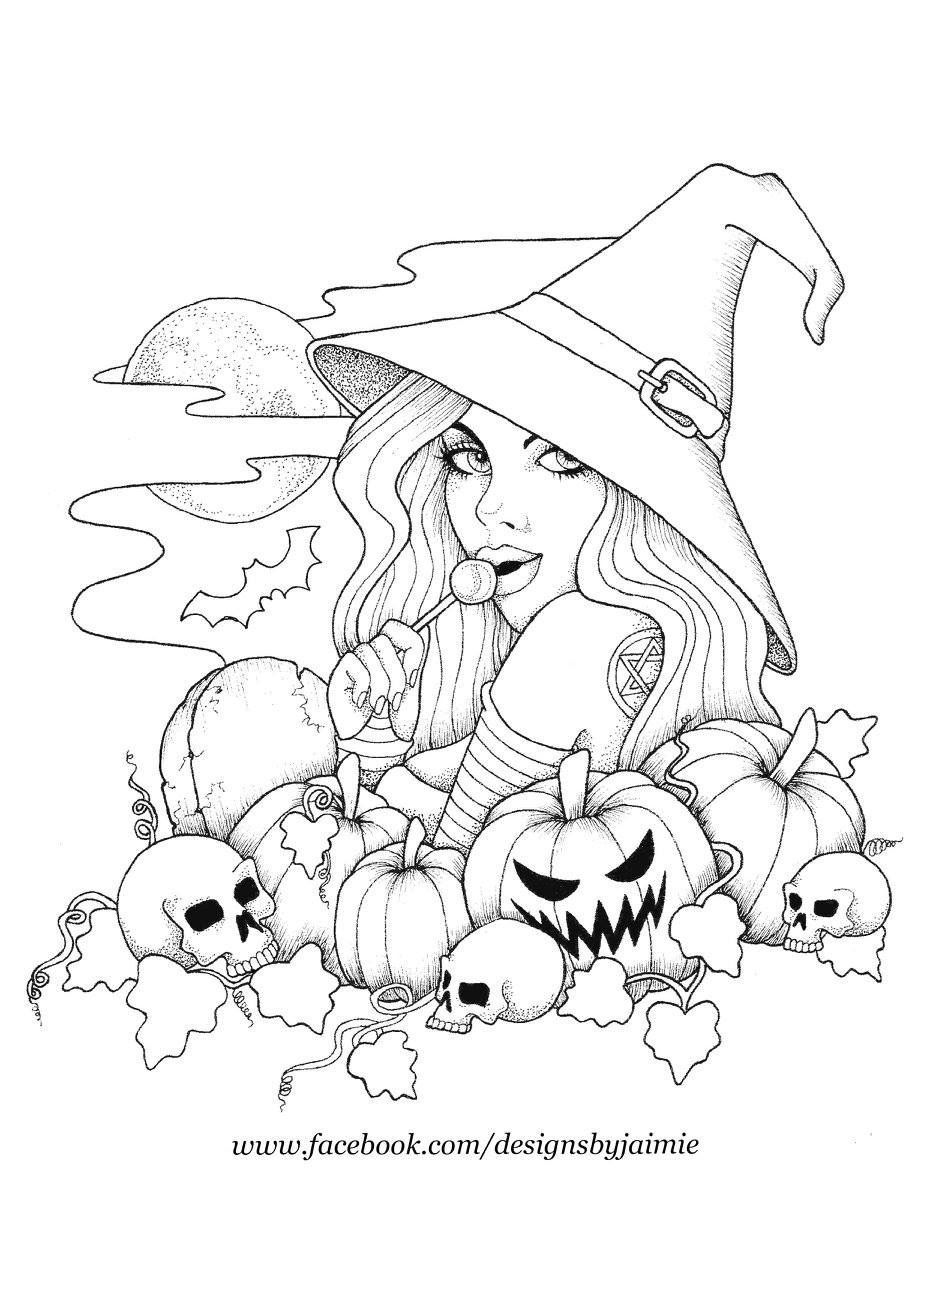 Witch And Pumpkins Witch Coloring Pages Halloween Coloring Pages Halloween Coloring Book In 2021 Witch Coloring Pages Halloween Coloring Pages Halloween Coloring Book